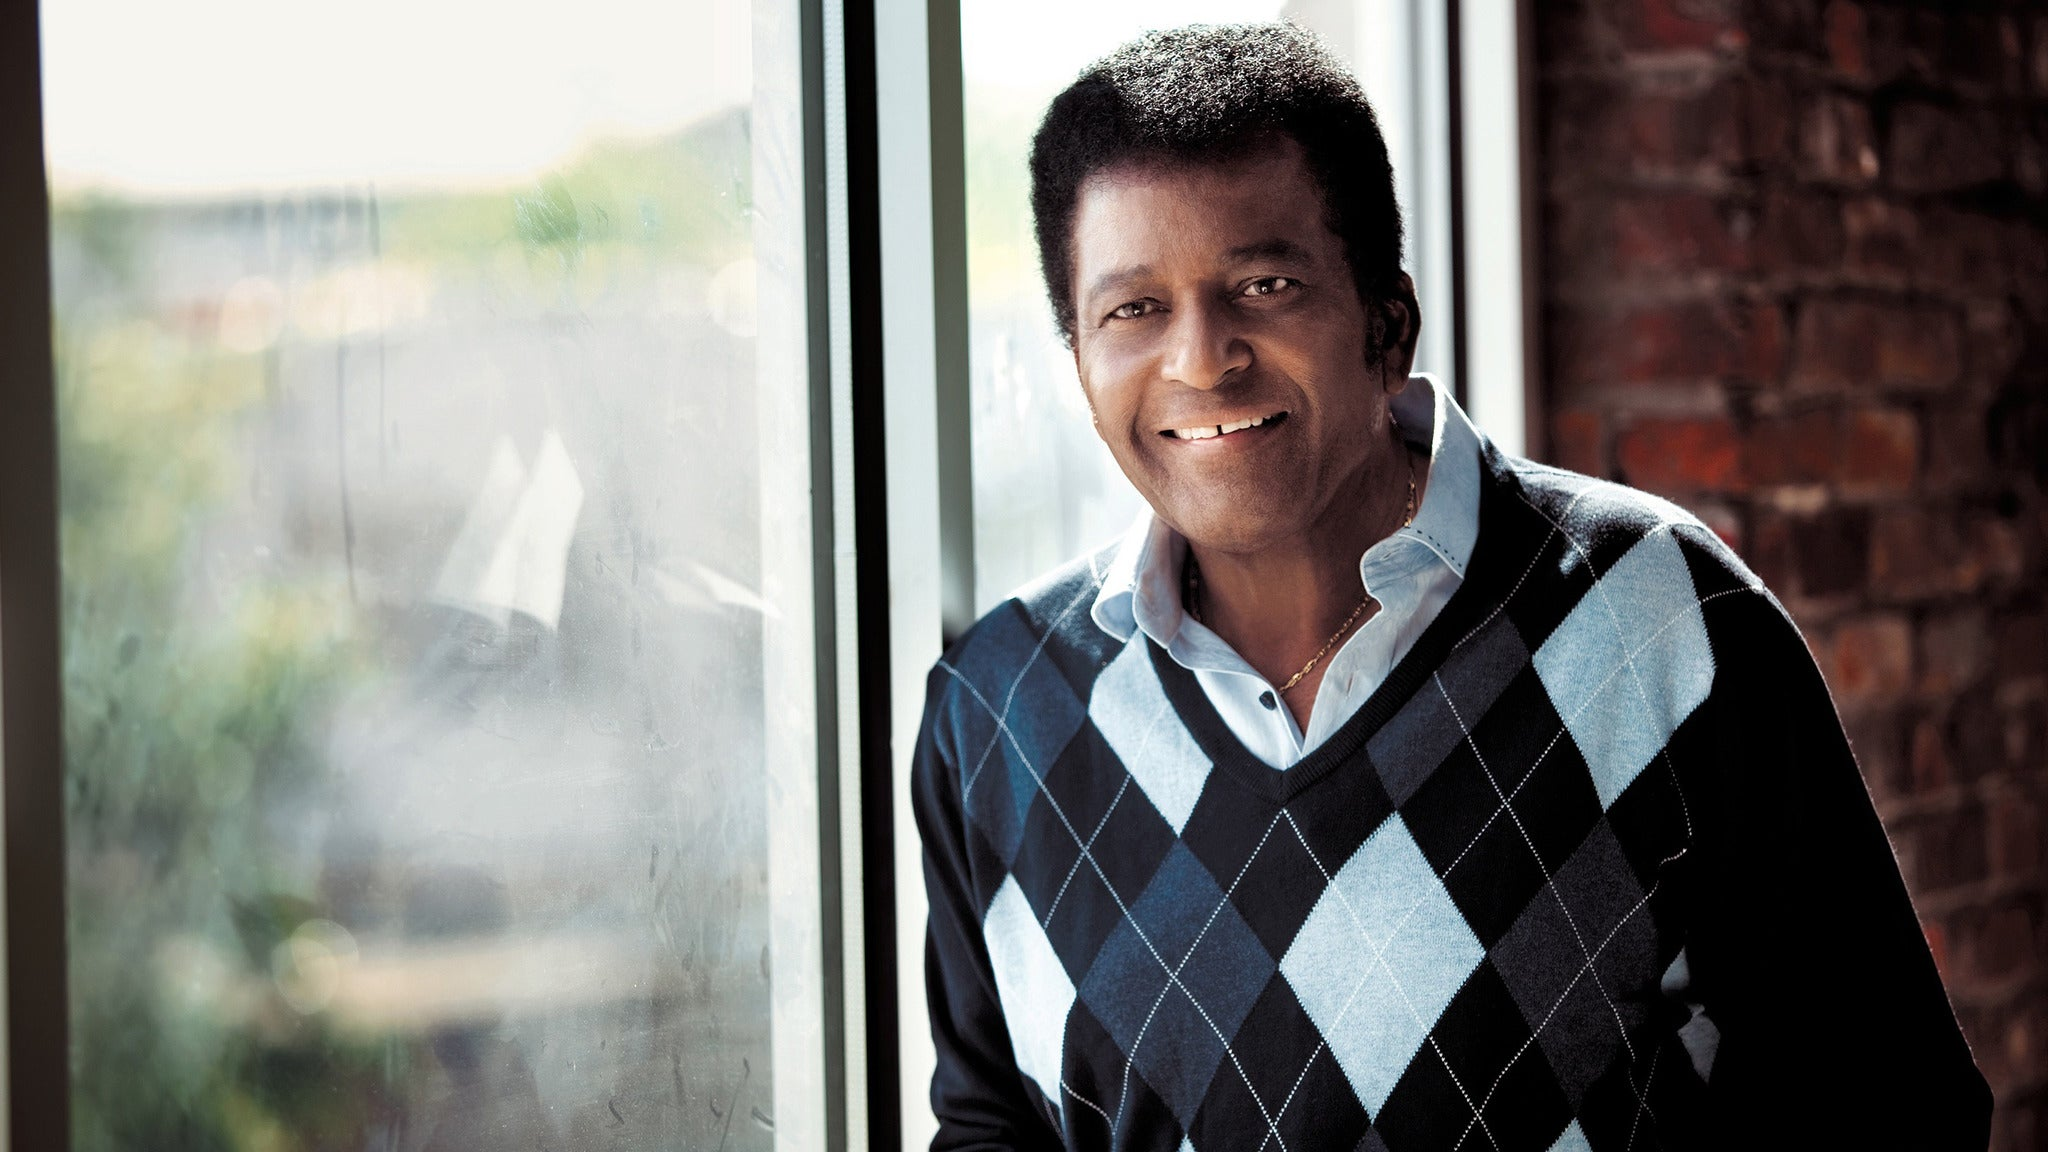 Heartland Presents Charley Pride with Roots & Boots